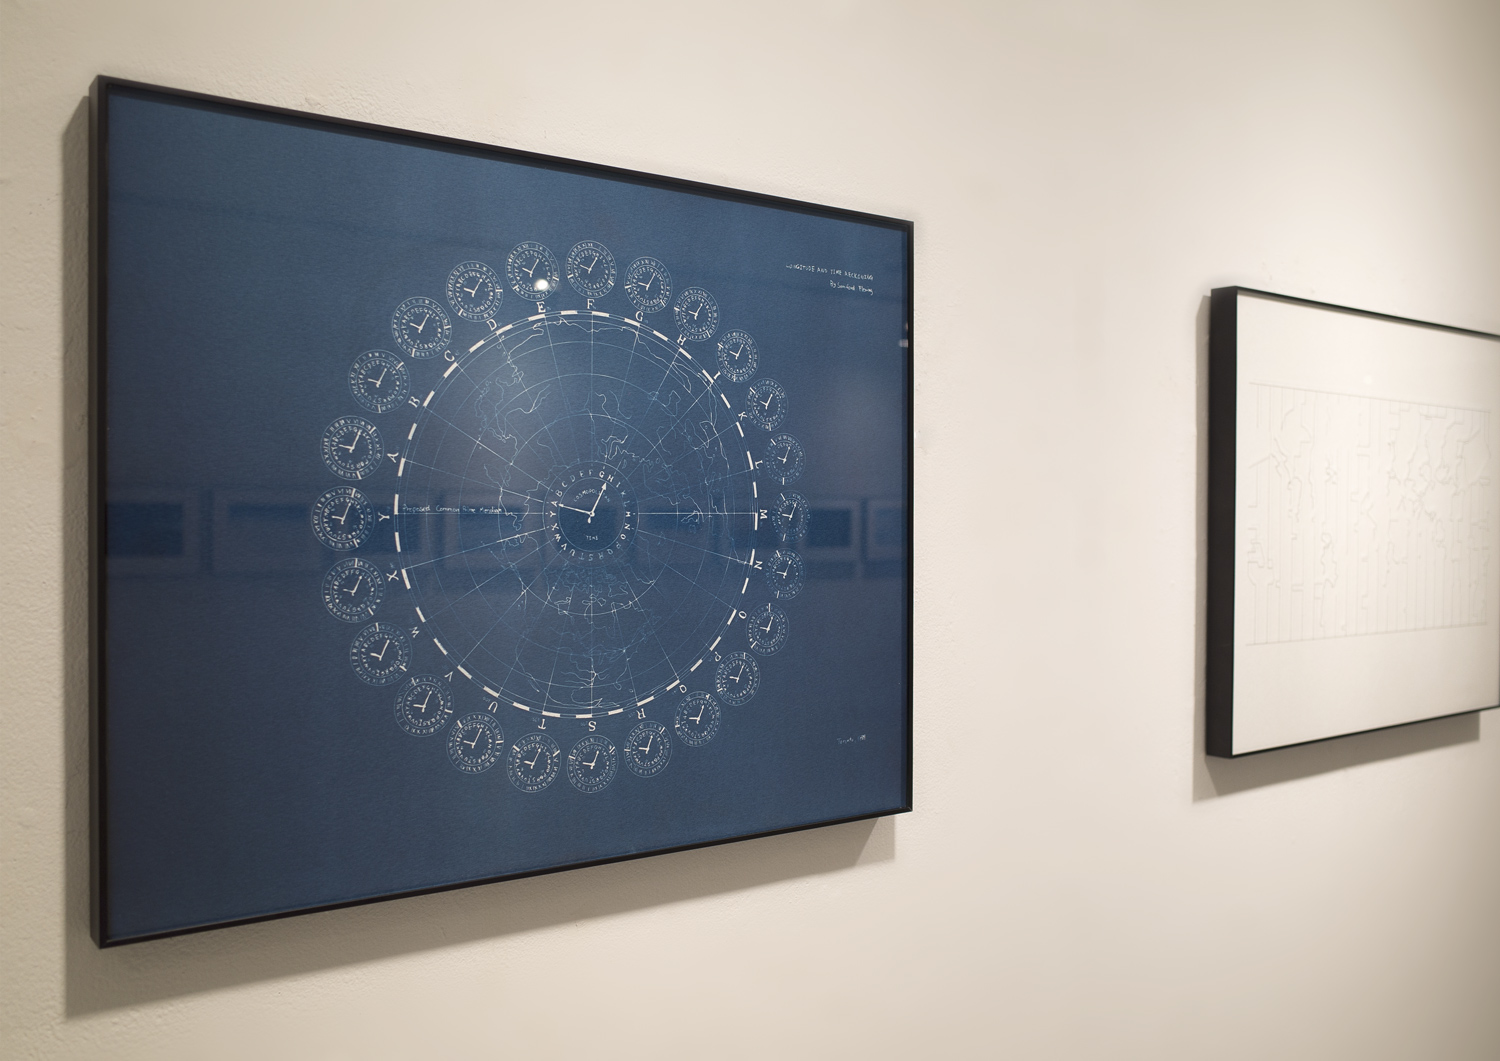 """Weltanschauung   (2013-ongoing), Ono photographs a sky-scape at the locations where the time-zone changes. The captured image contains two different times within a single exposure. The concept of time-zone was first introduced in 1879, with a division of straight lines every 15 degrees. However today, the countries are free to claim their own time-zone, and it has become a manifestation of the territorial situations of the ground. The neighboring countries such as India and Pakistan sees 30-minutes time difference between each other - to show a difference.   Cyanotype, silkscreen on glass and white paper, 16"""" x 20"""" each"""